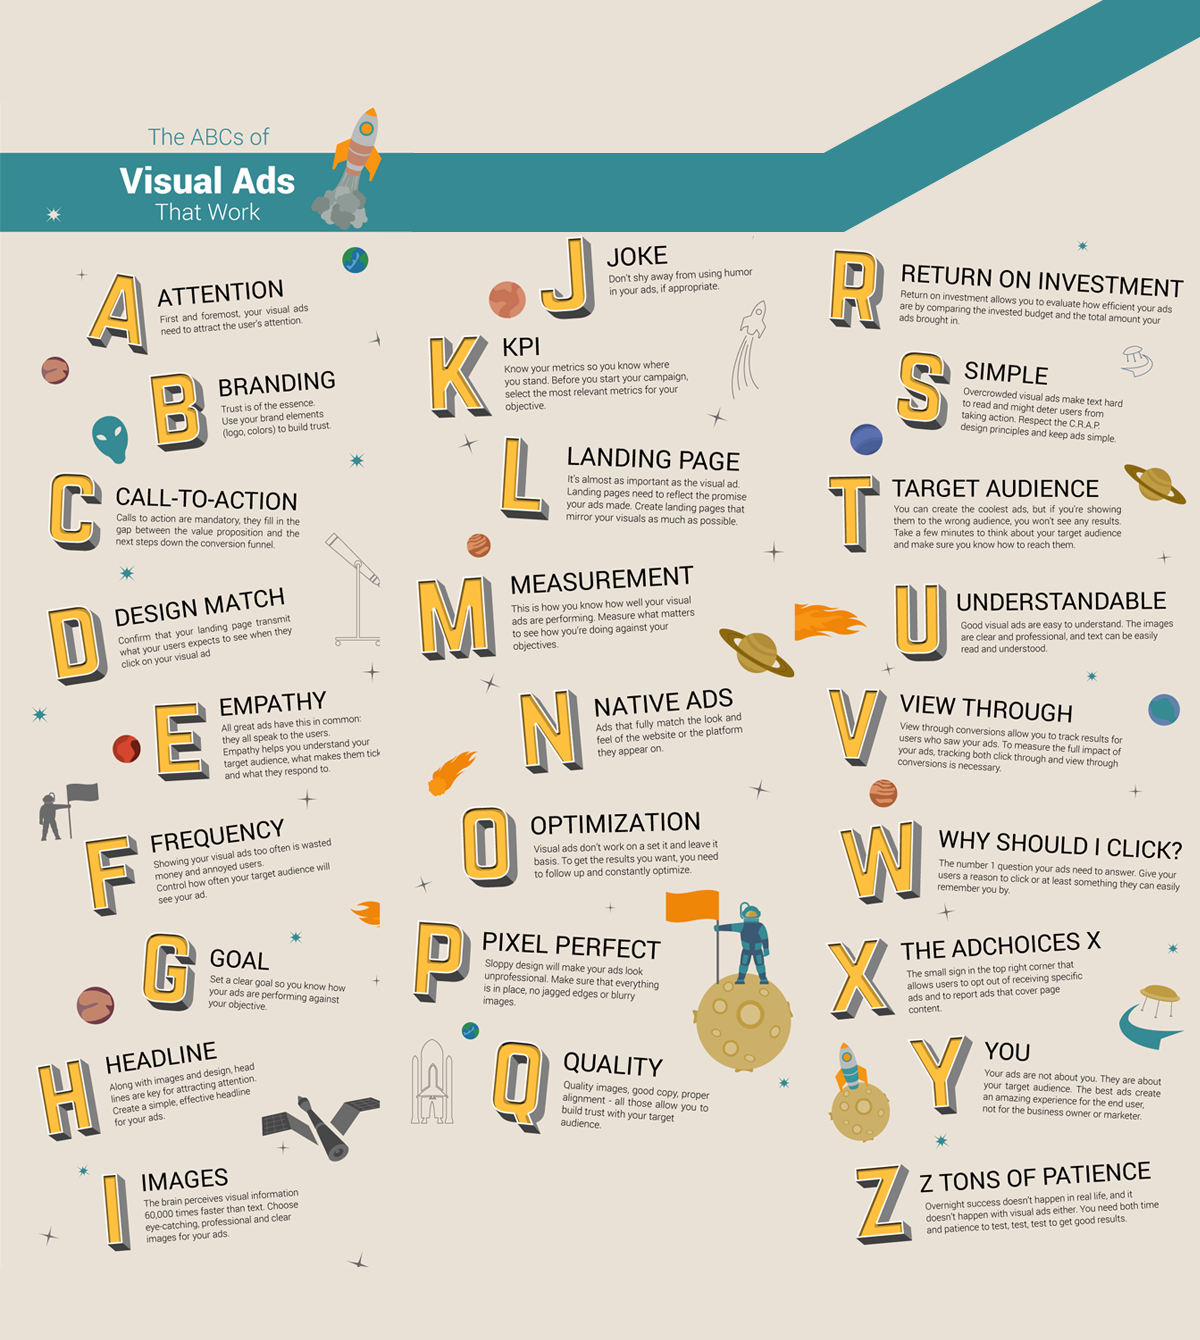 ABC visuele advertenties